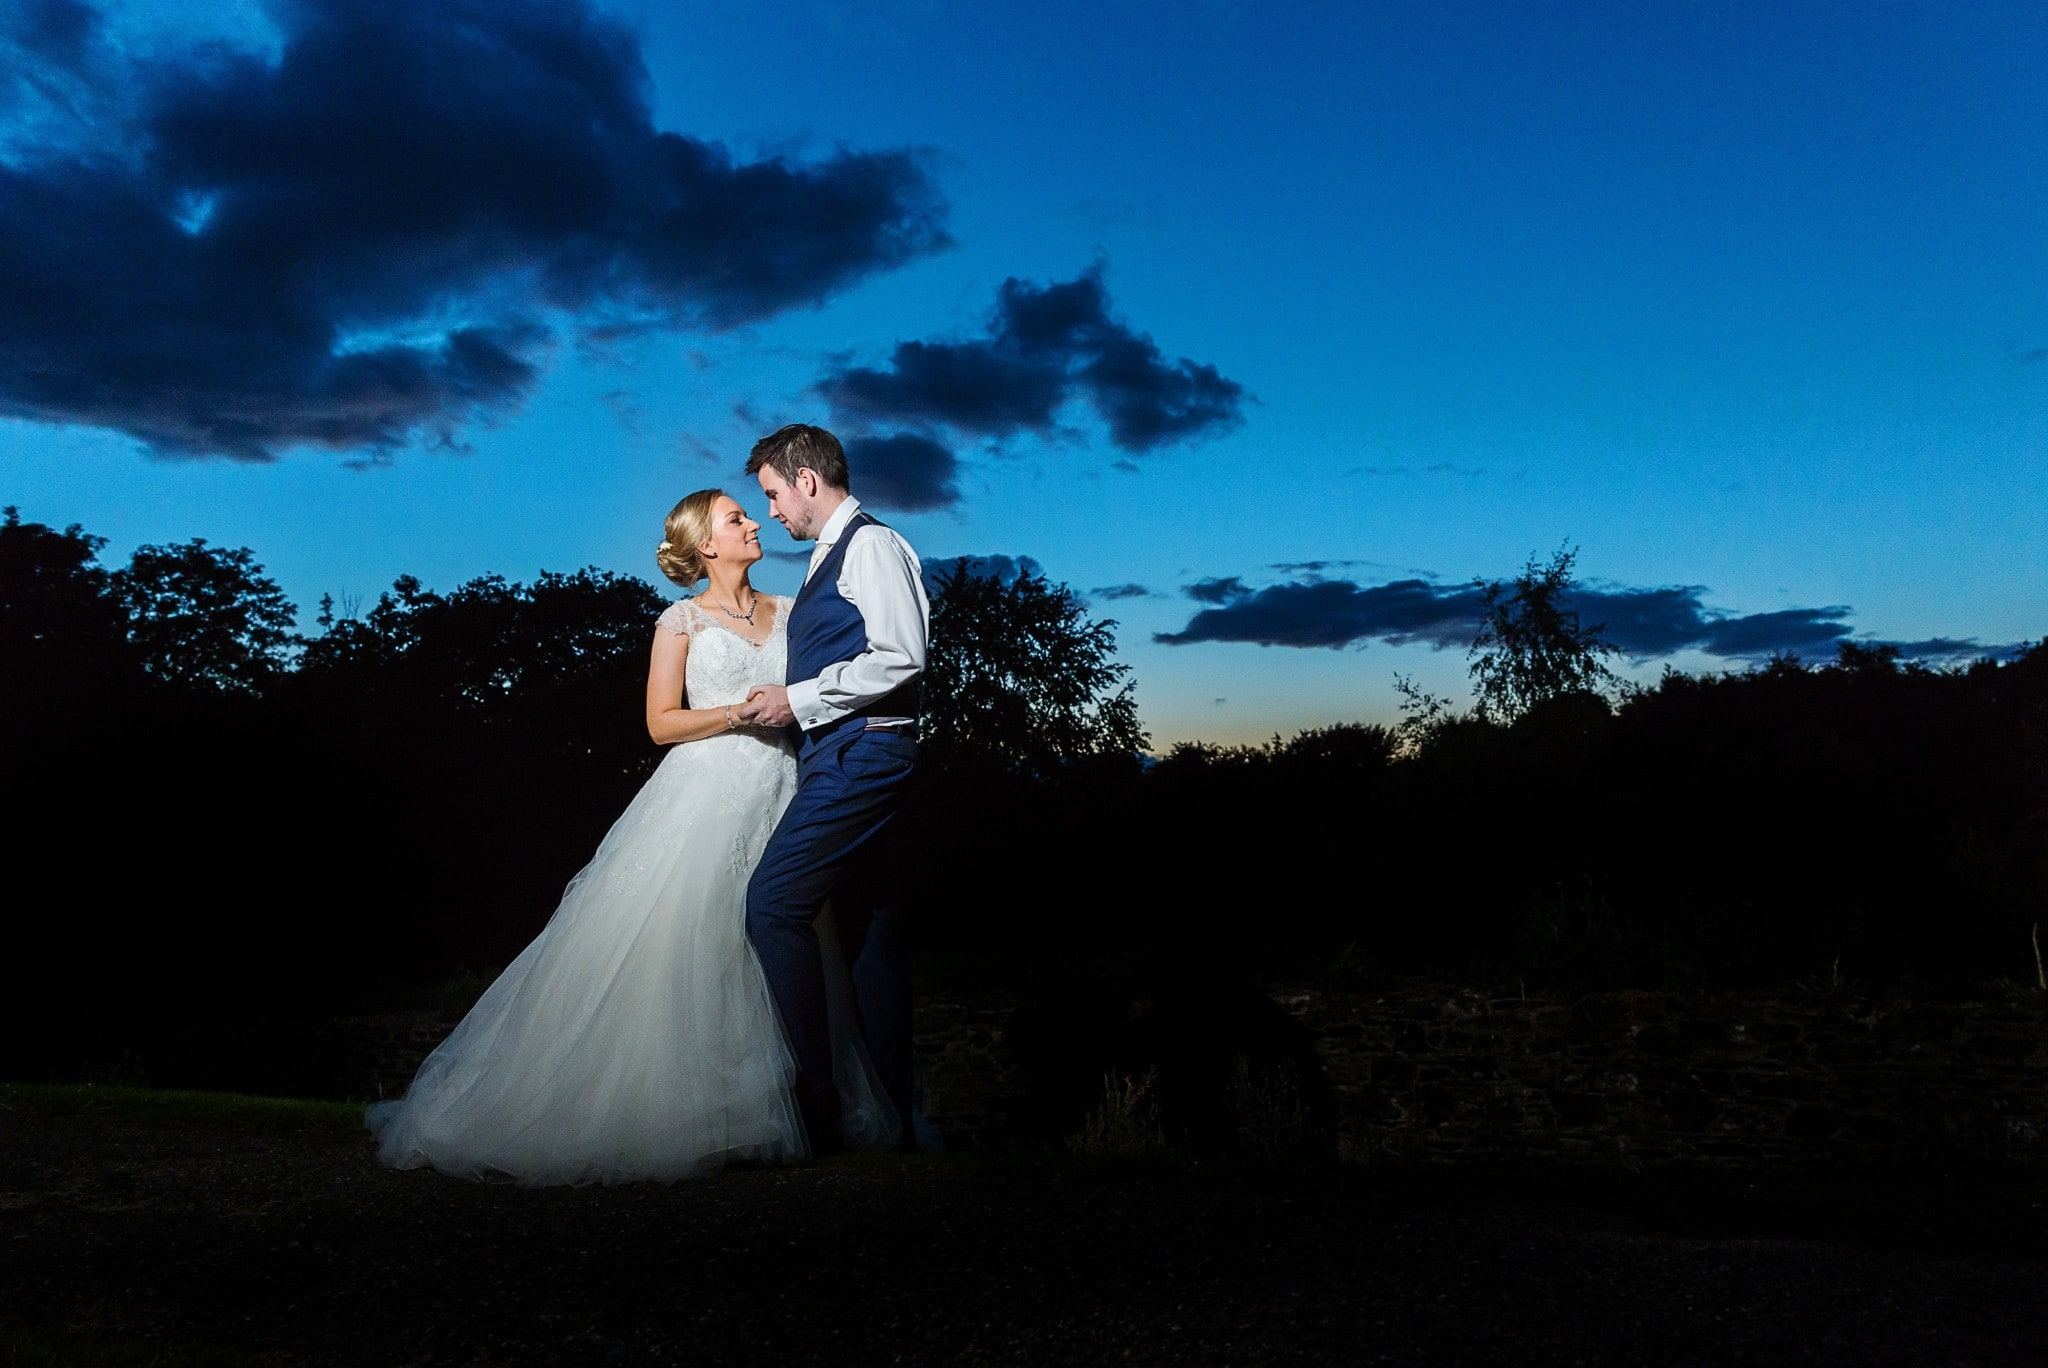 Destination_wedding_ireland_wedding_photography_luxury00029